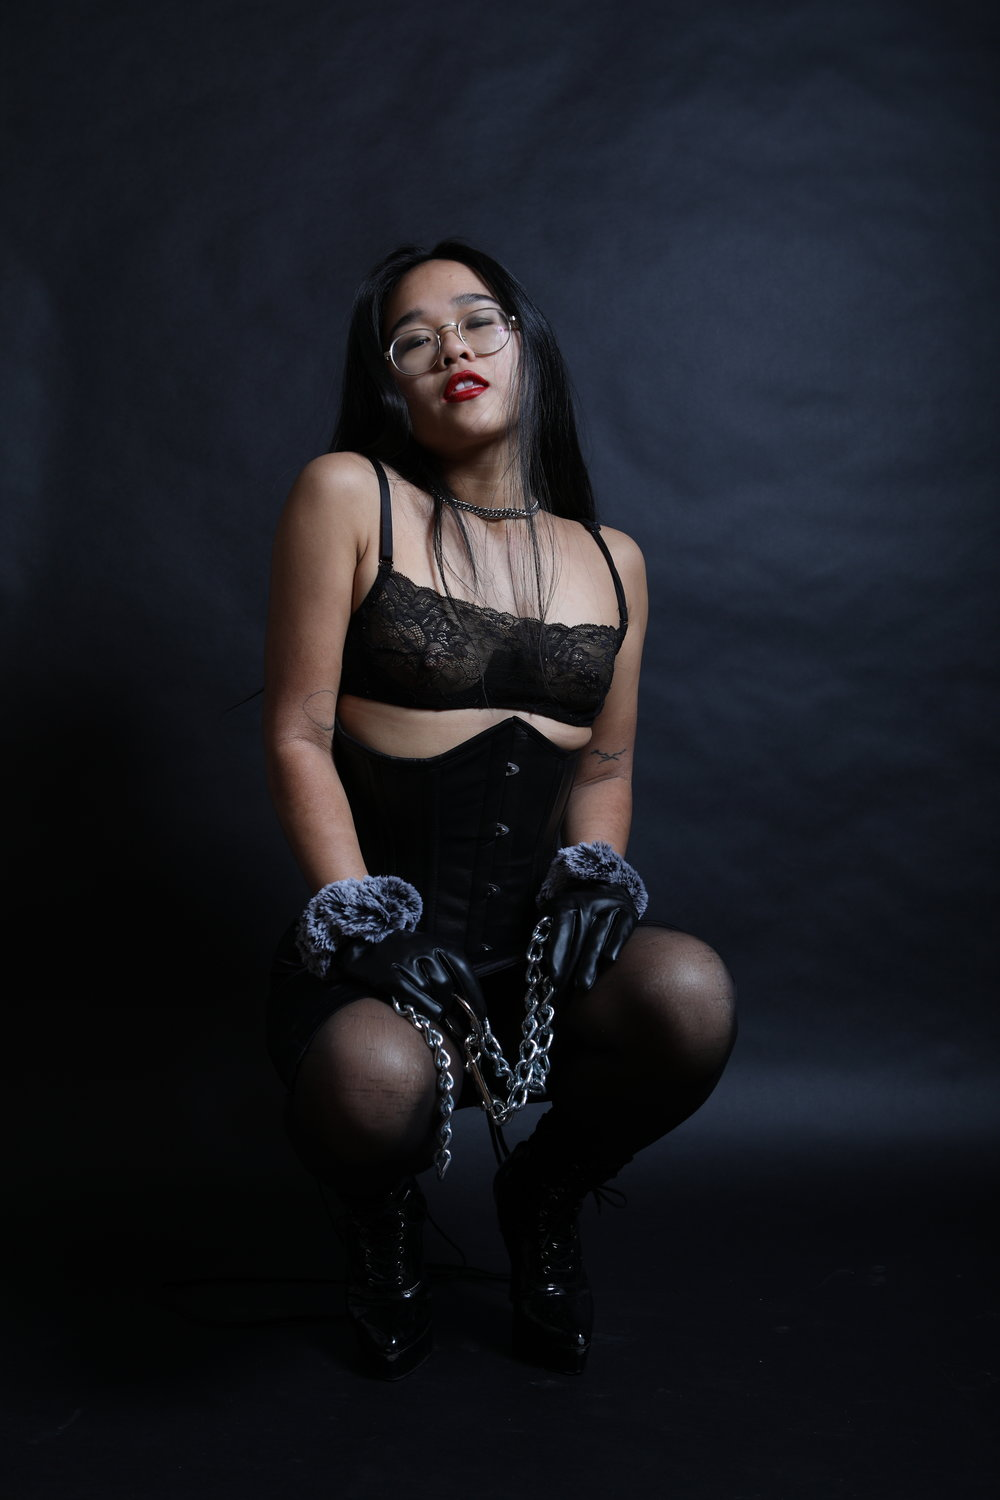 Empress Wu, NYC prodomme and BDSM professional, in a leather corset holding the chains with which she wants to put you in bondage